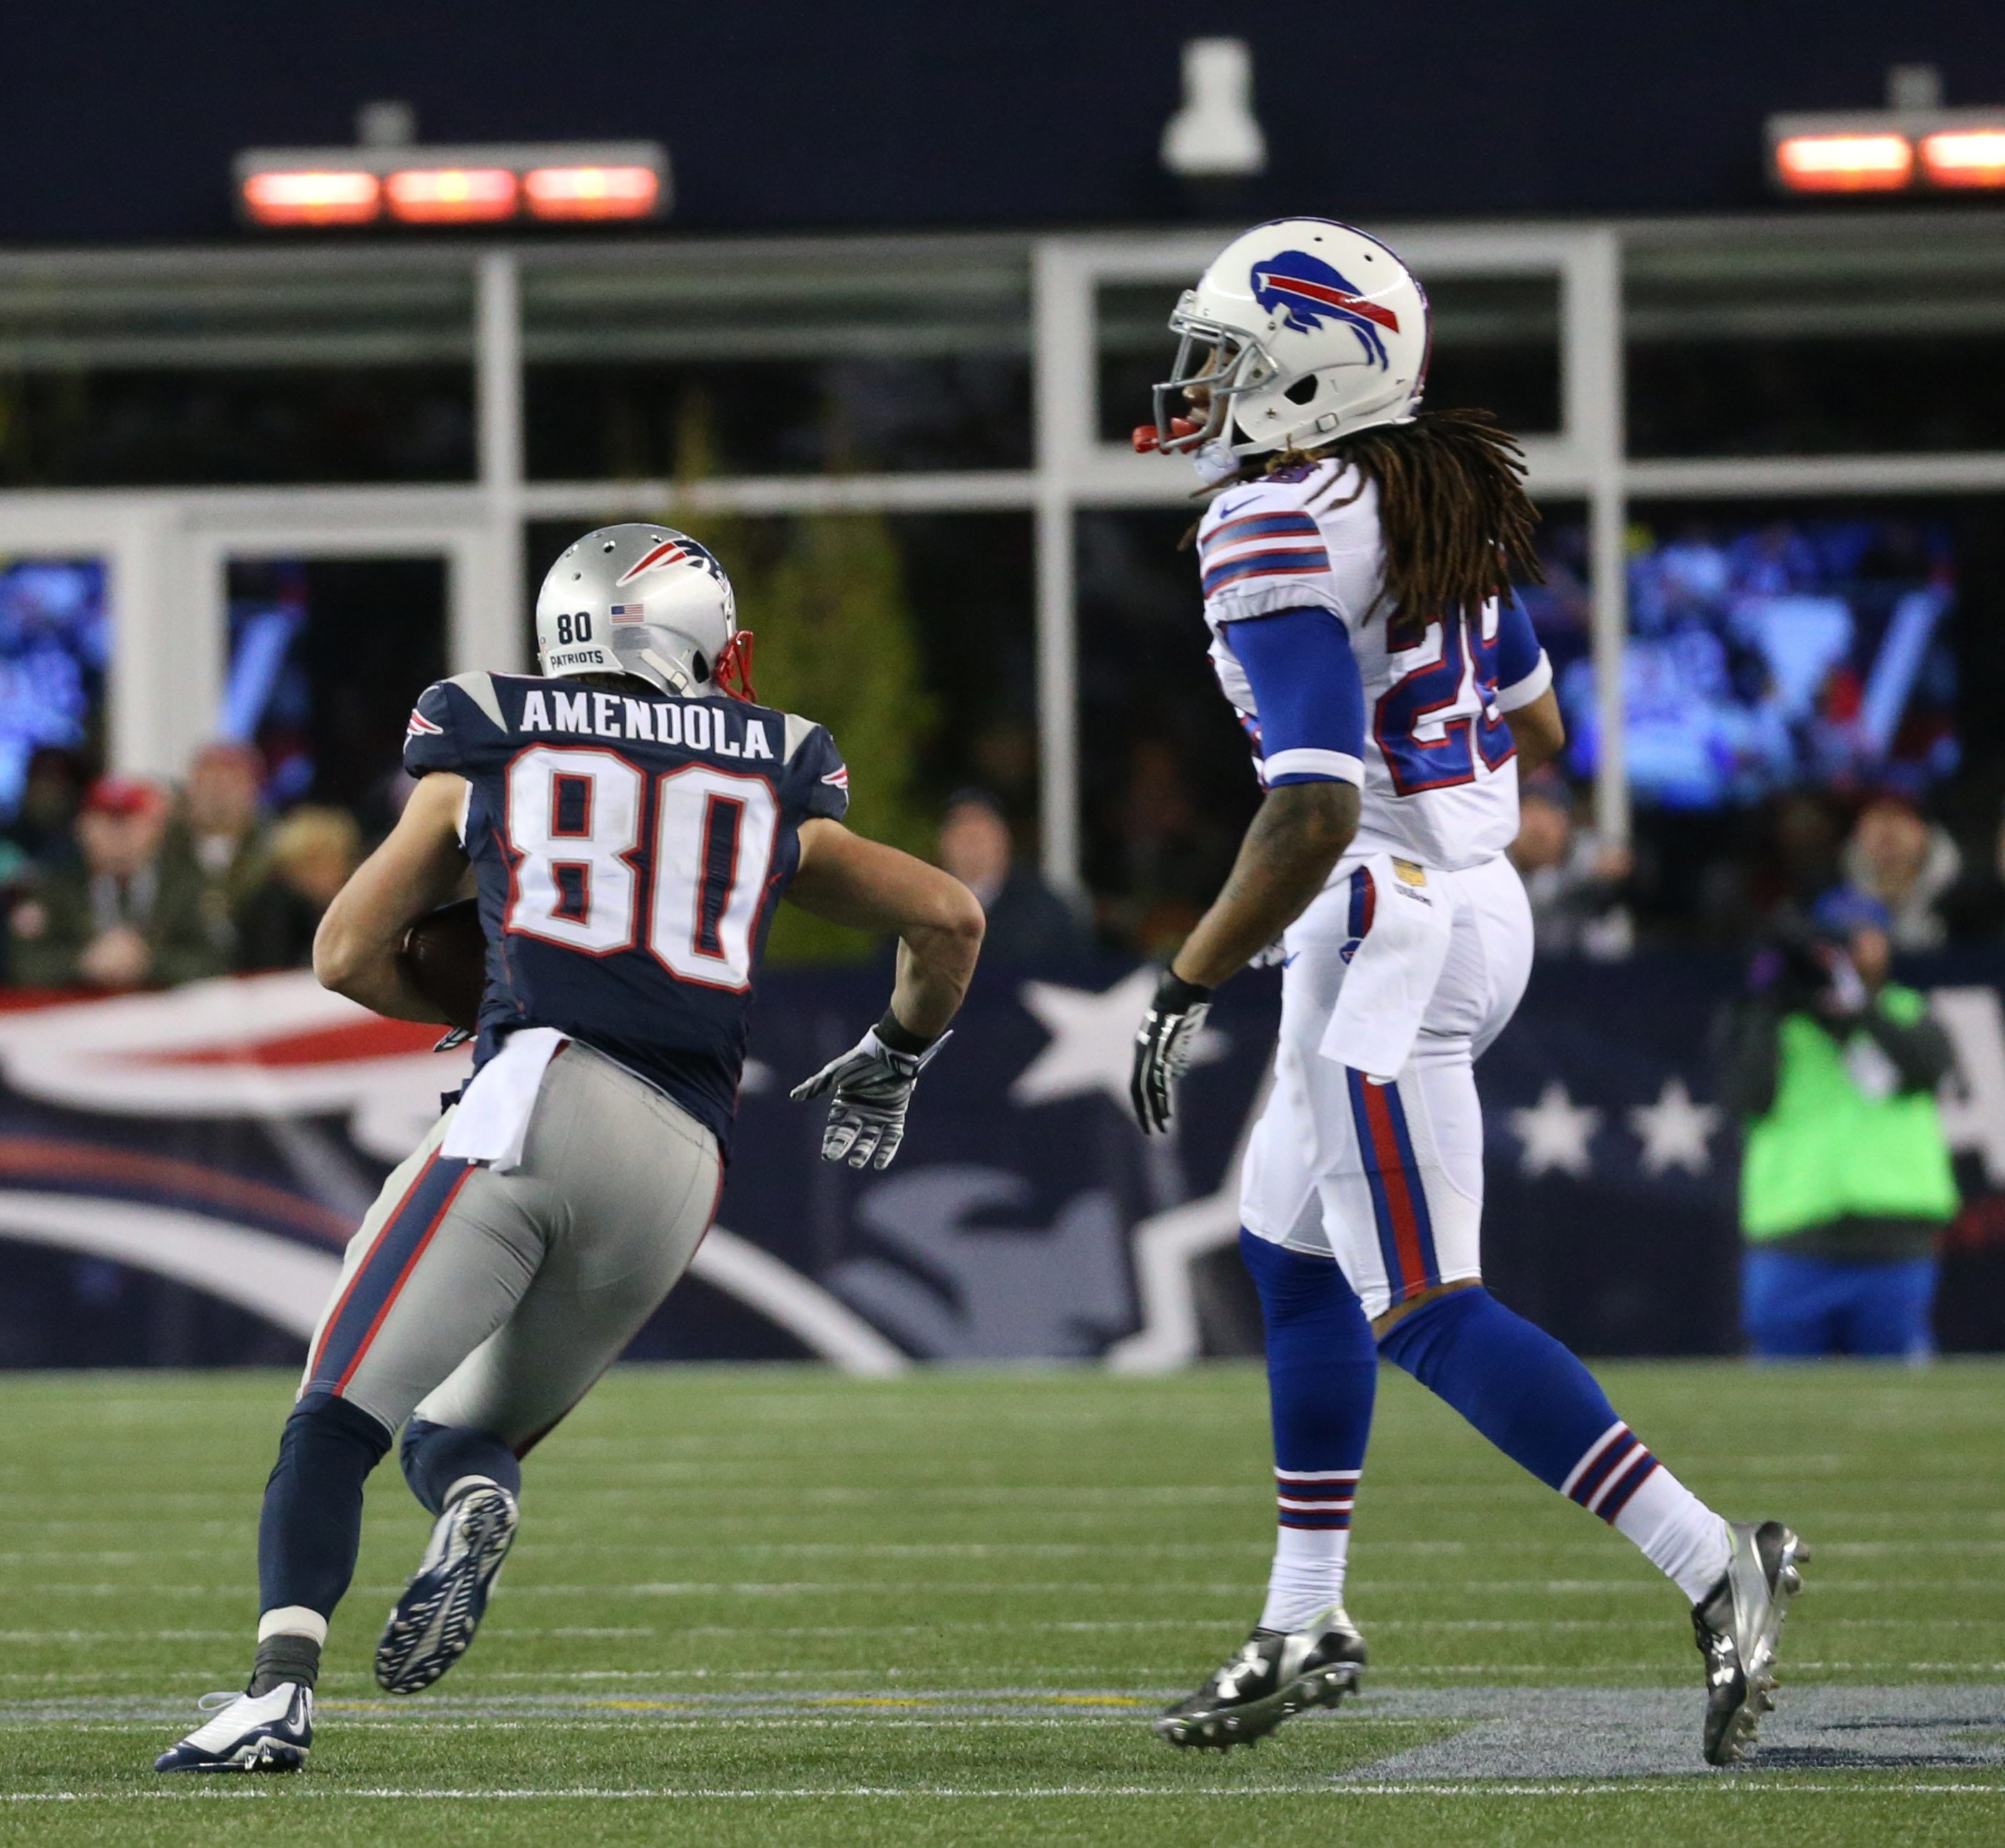 Danny Amendola catches a pass but the play was blown dead early in the third quarter. Yet the Bills may have been fortunate on the play.